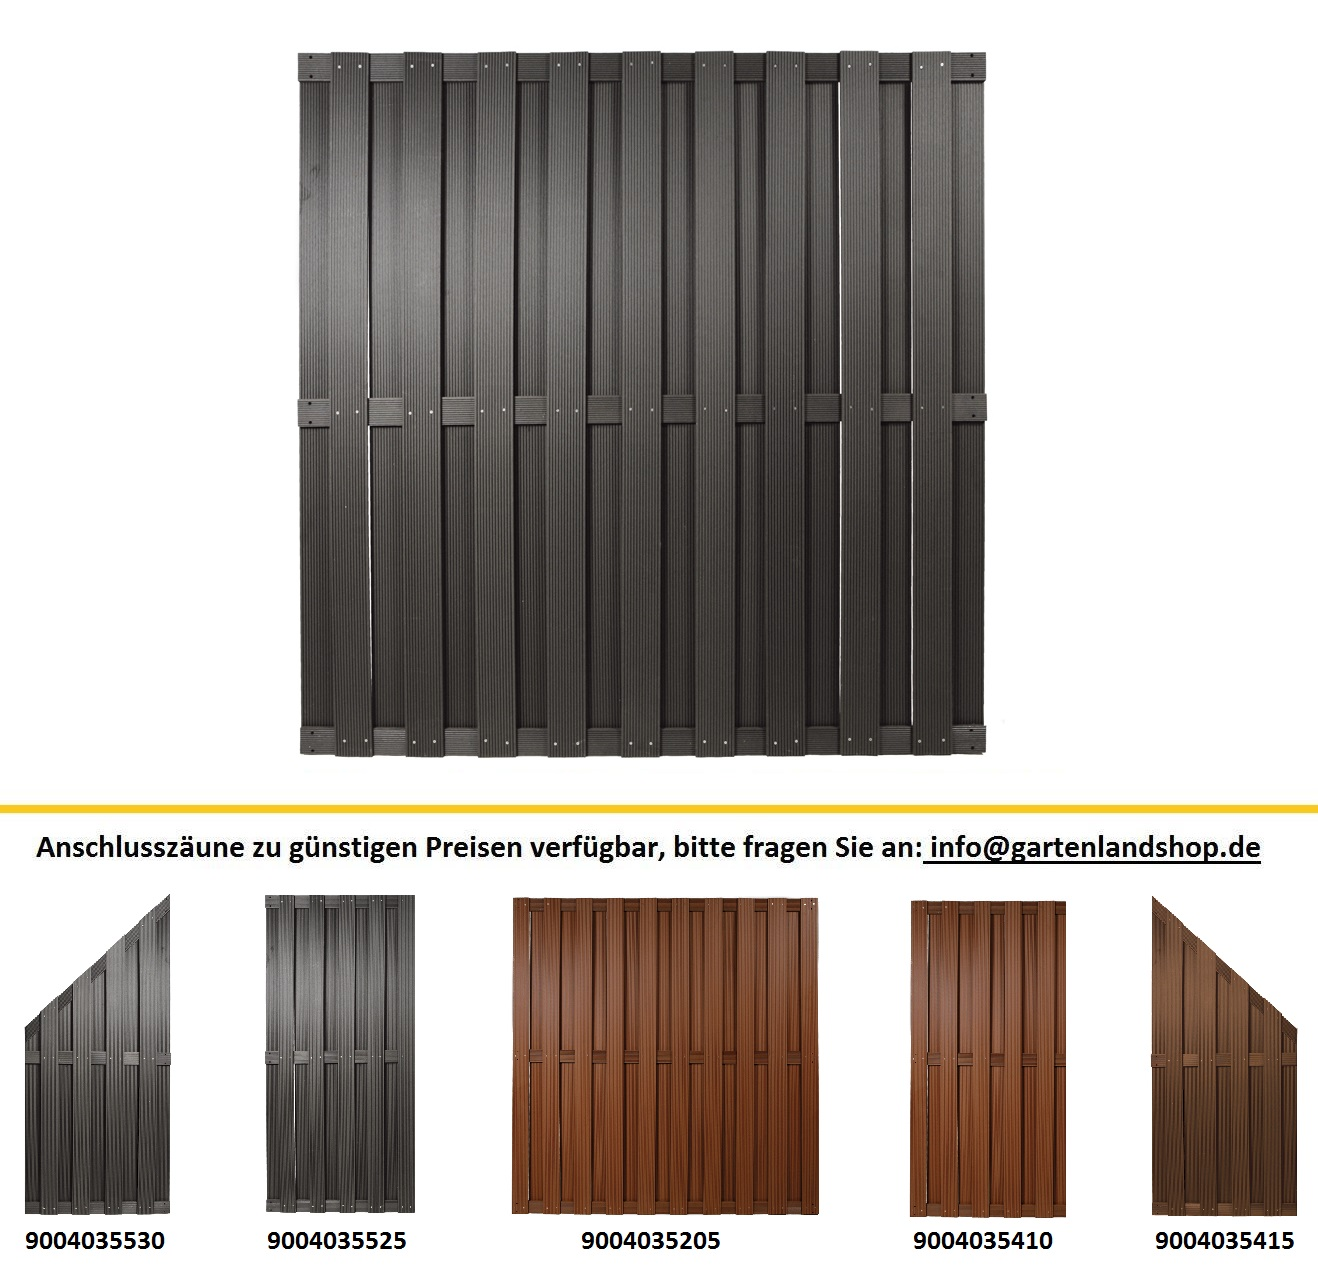 wpc zaun 1 80 x 1 80m top qualit t nie wieder streichen ebay. Black Bedroom Furniture Sets. Home Design Ideas